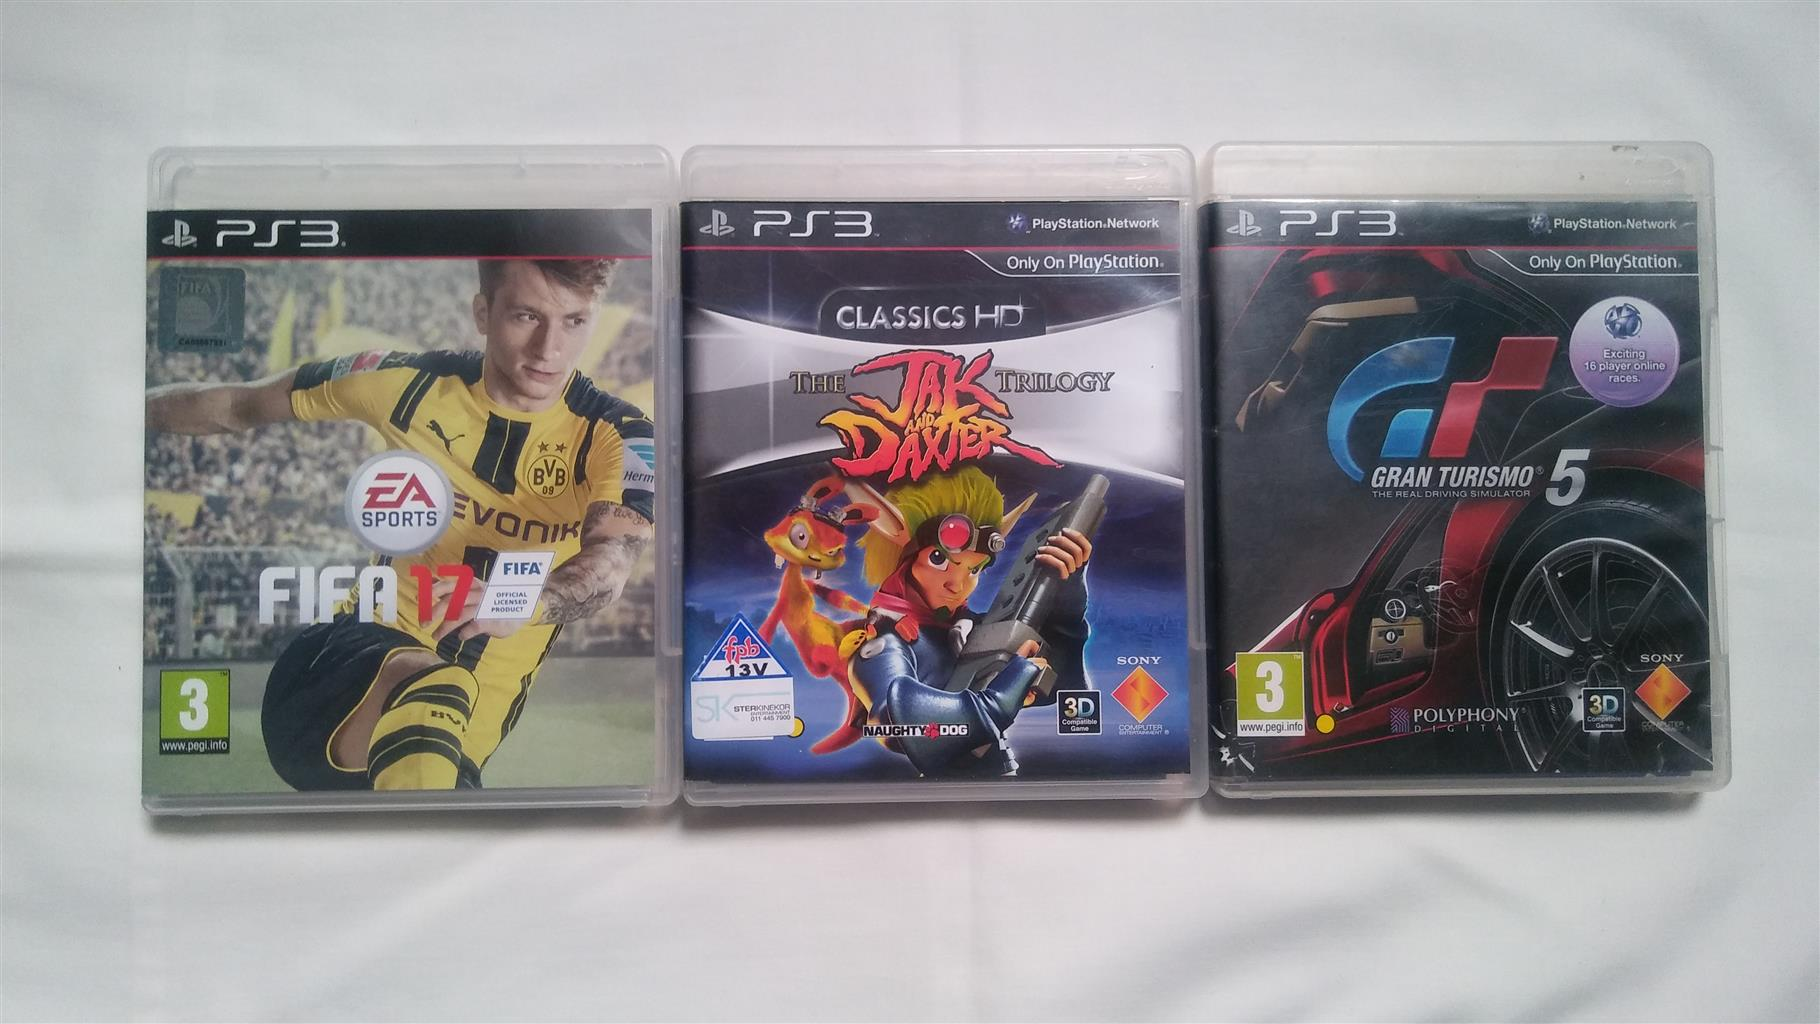 PS3 GAMES - FIFA 17 + JAK AND DAXTER TRILOGY + GRAN TURISMO 5